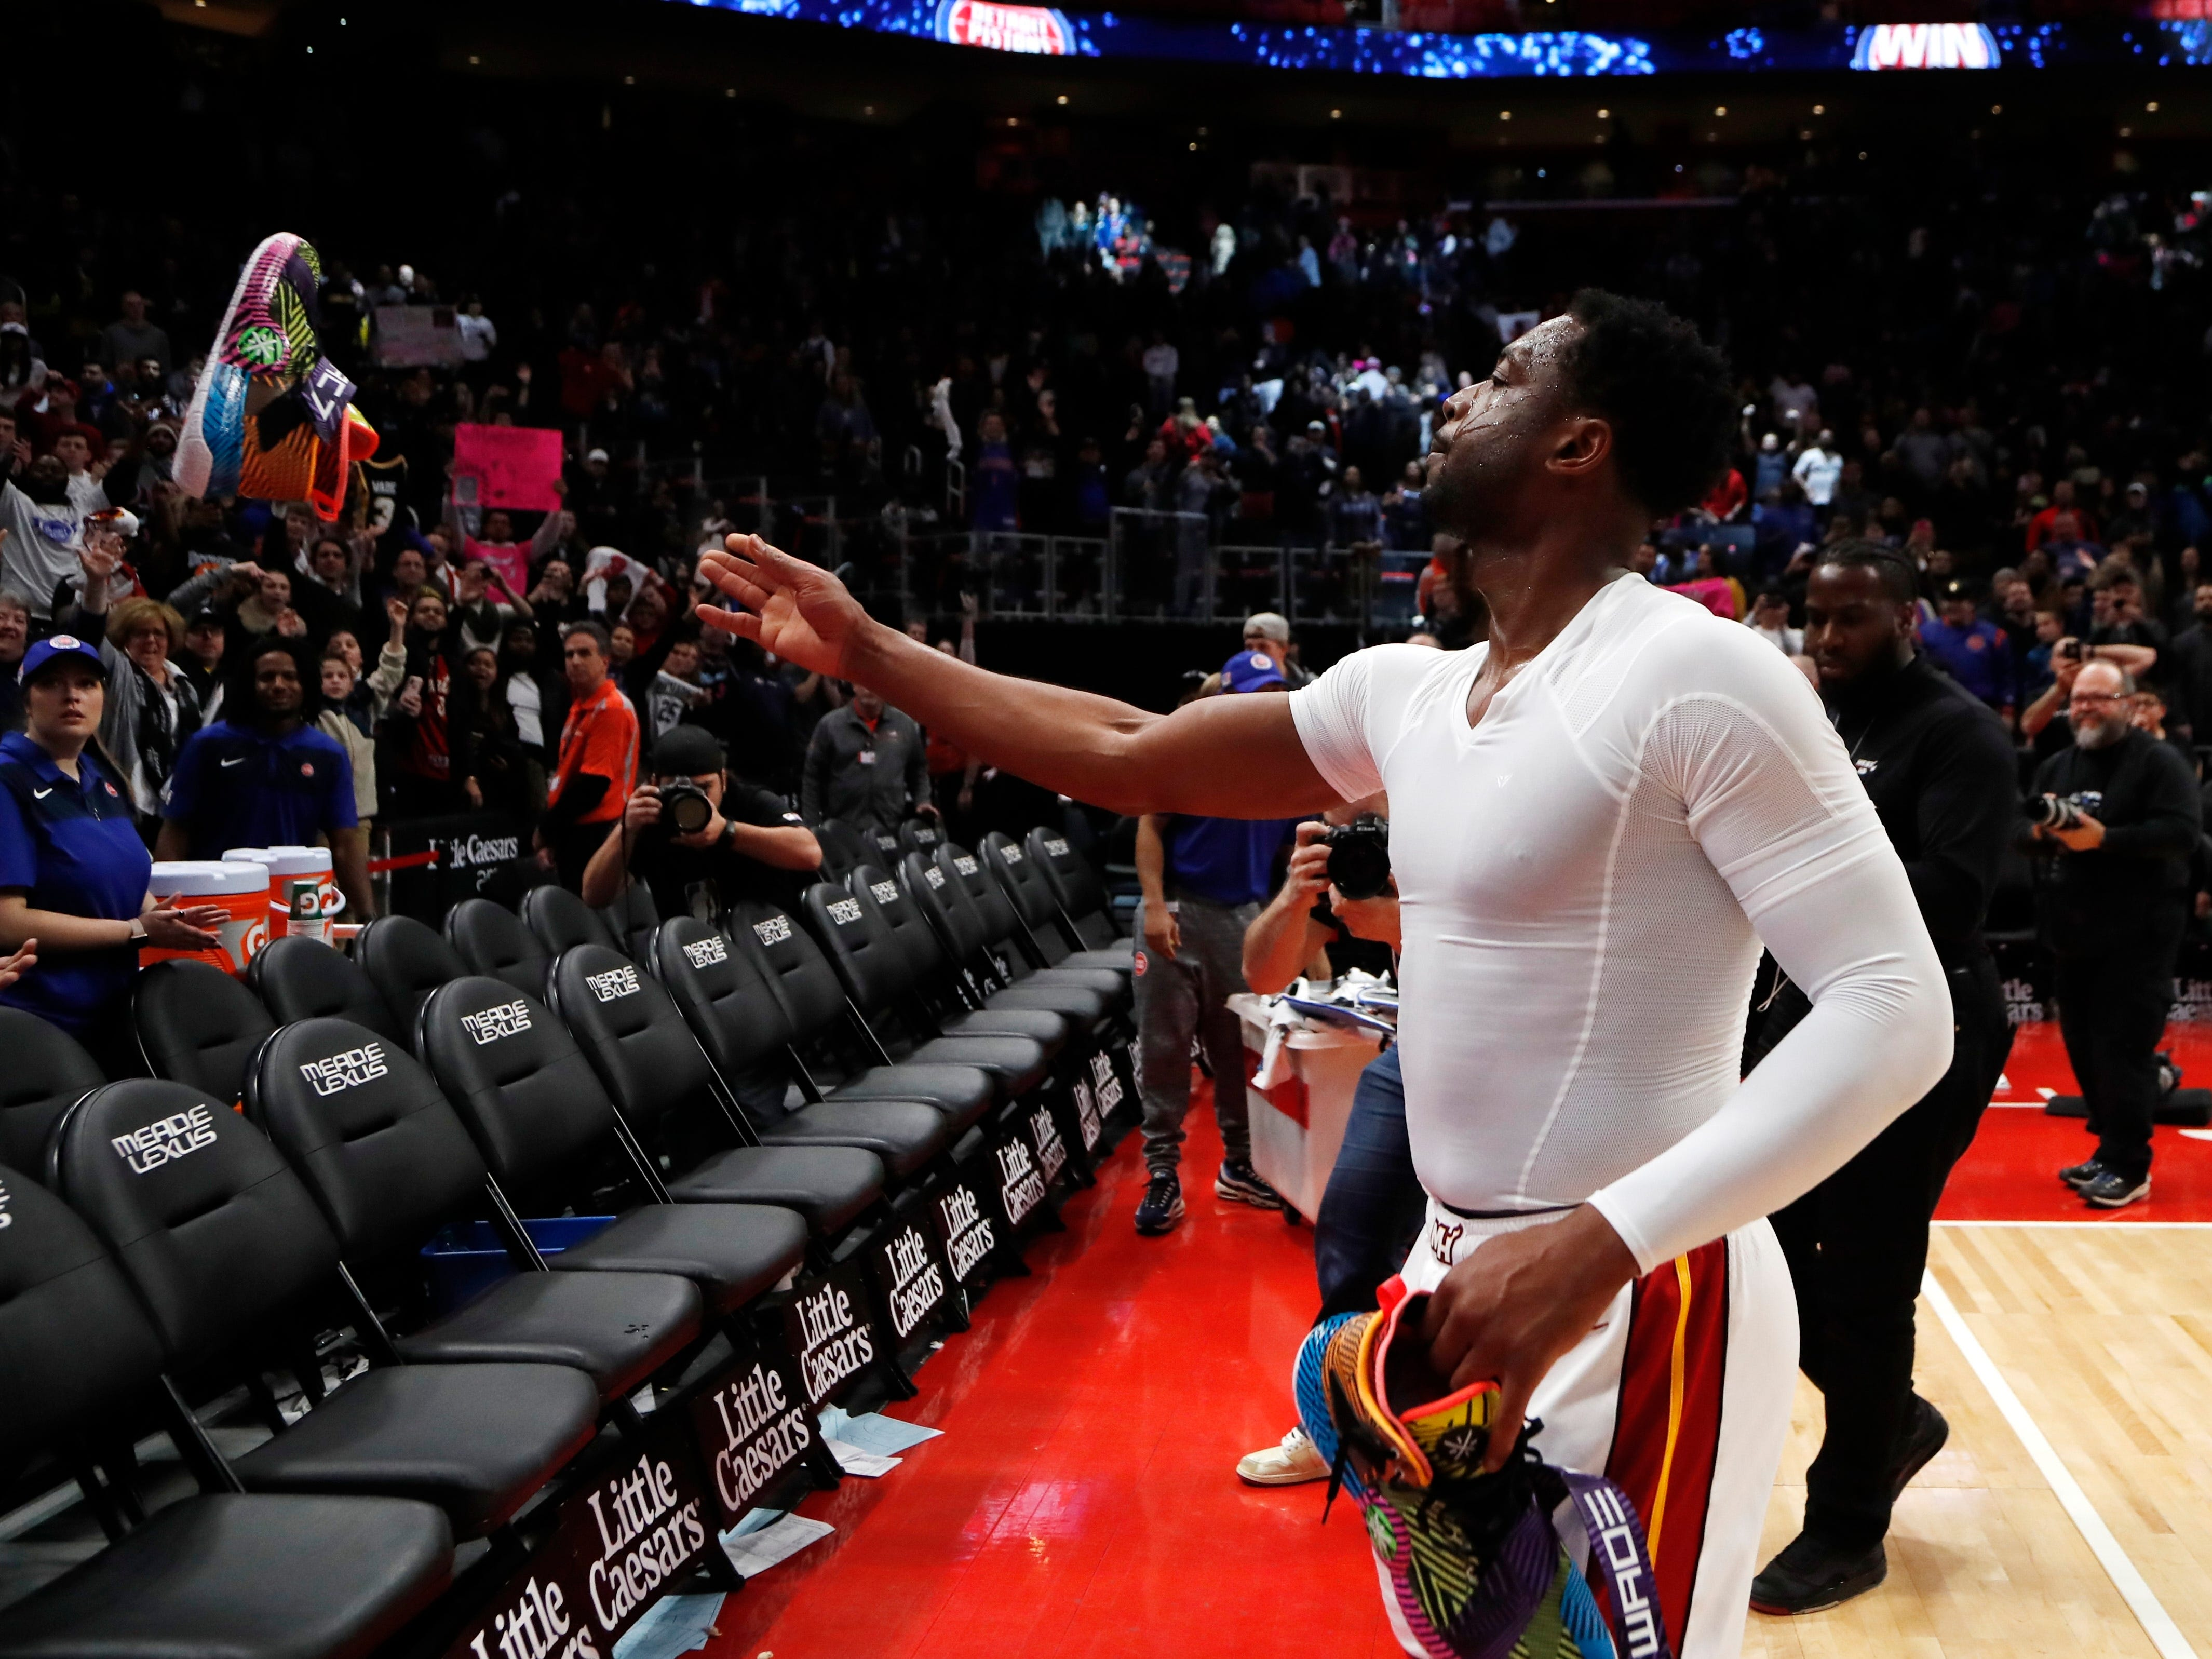 Miami Heat guard Dwyane Wade tosses one of his sneakers to a fan after the game.